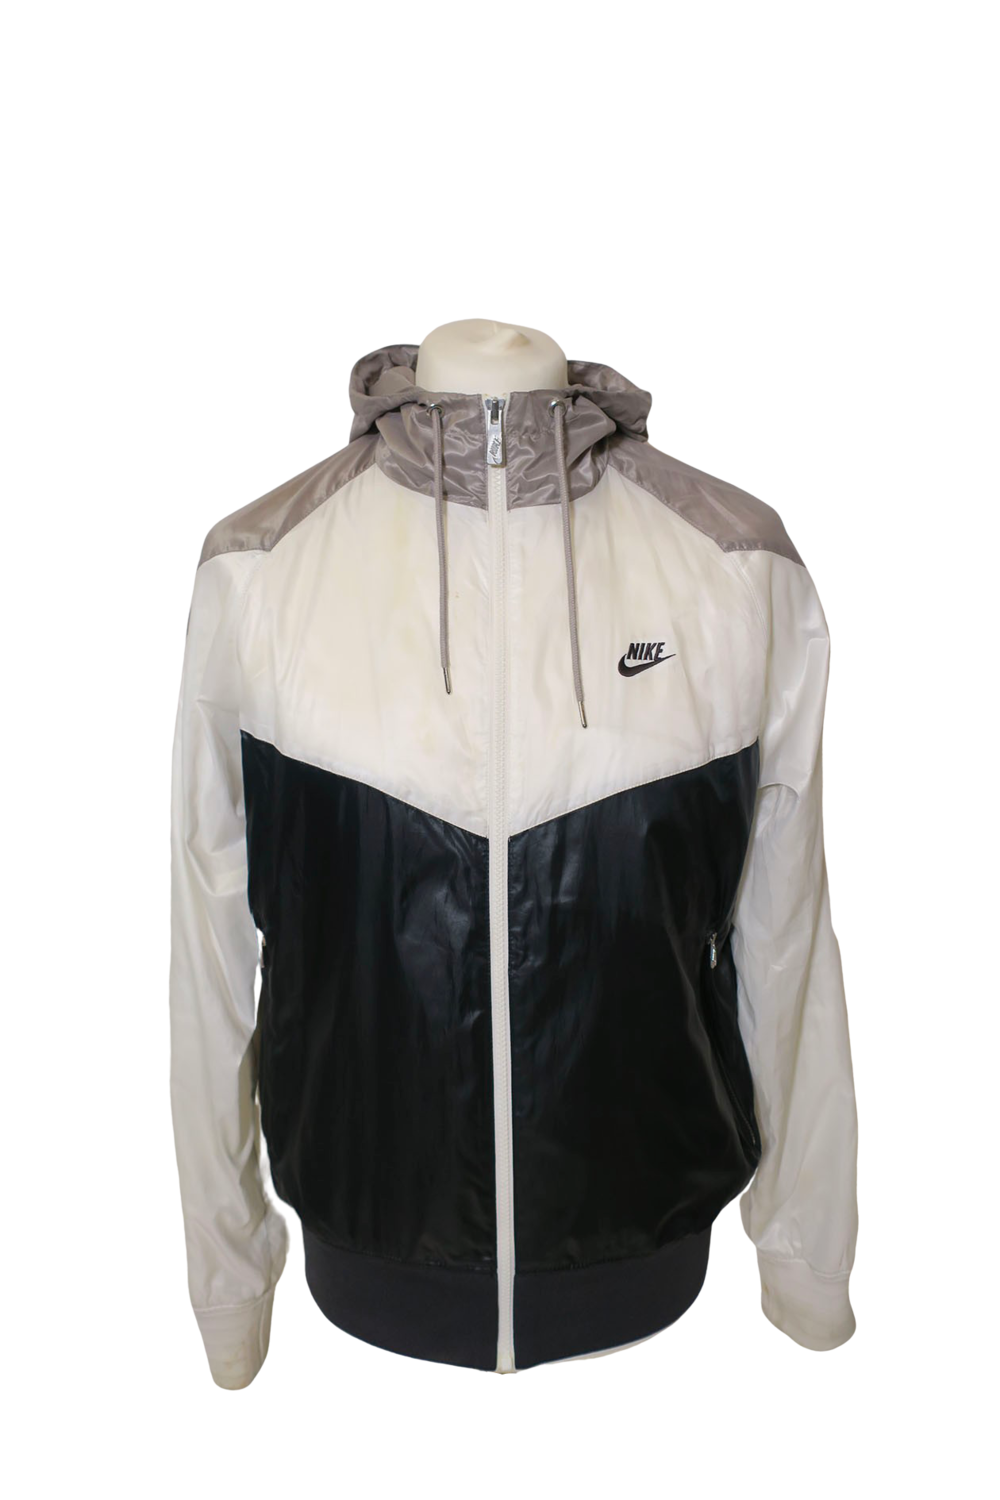 Nike White Windrunner